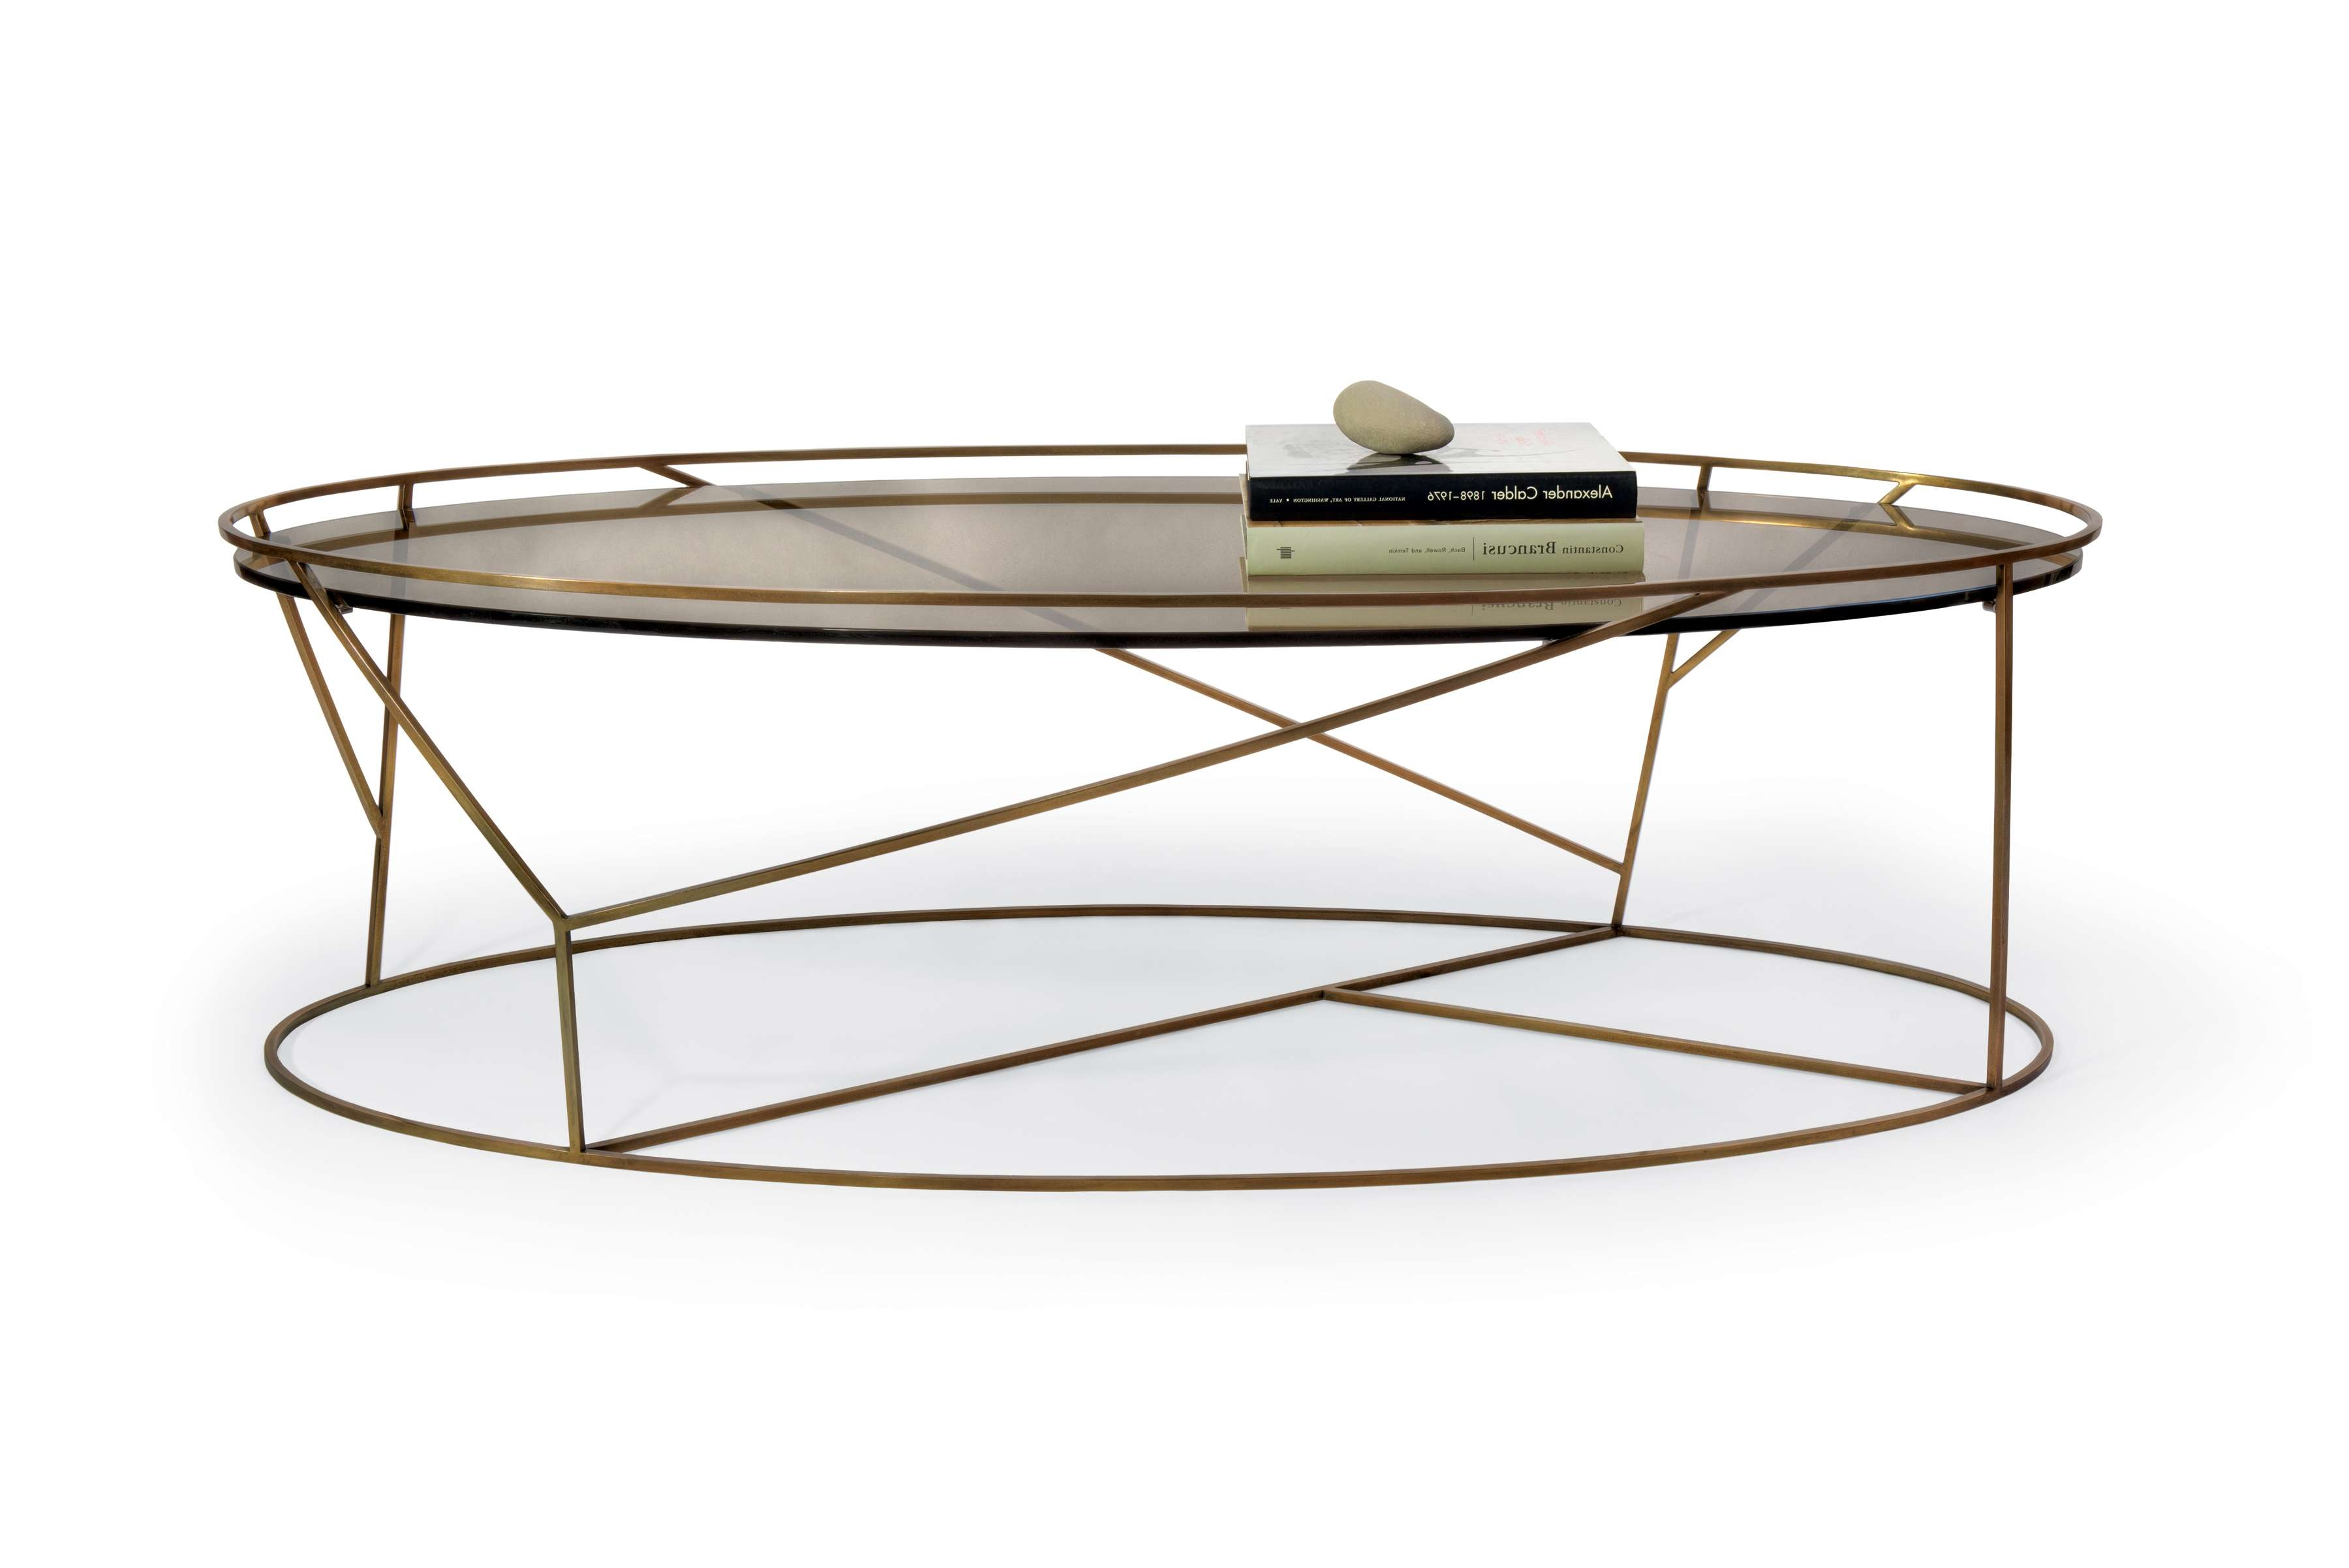 Well Known Oval Glass Coffee Tables Throughout Brass Frame Coffee Table With Oval Glass Top For Small Rustic (View 9 of 20)